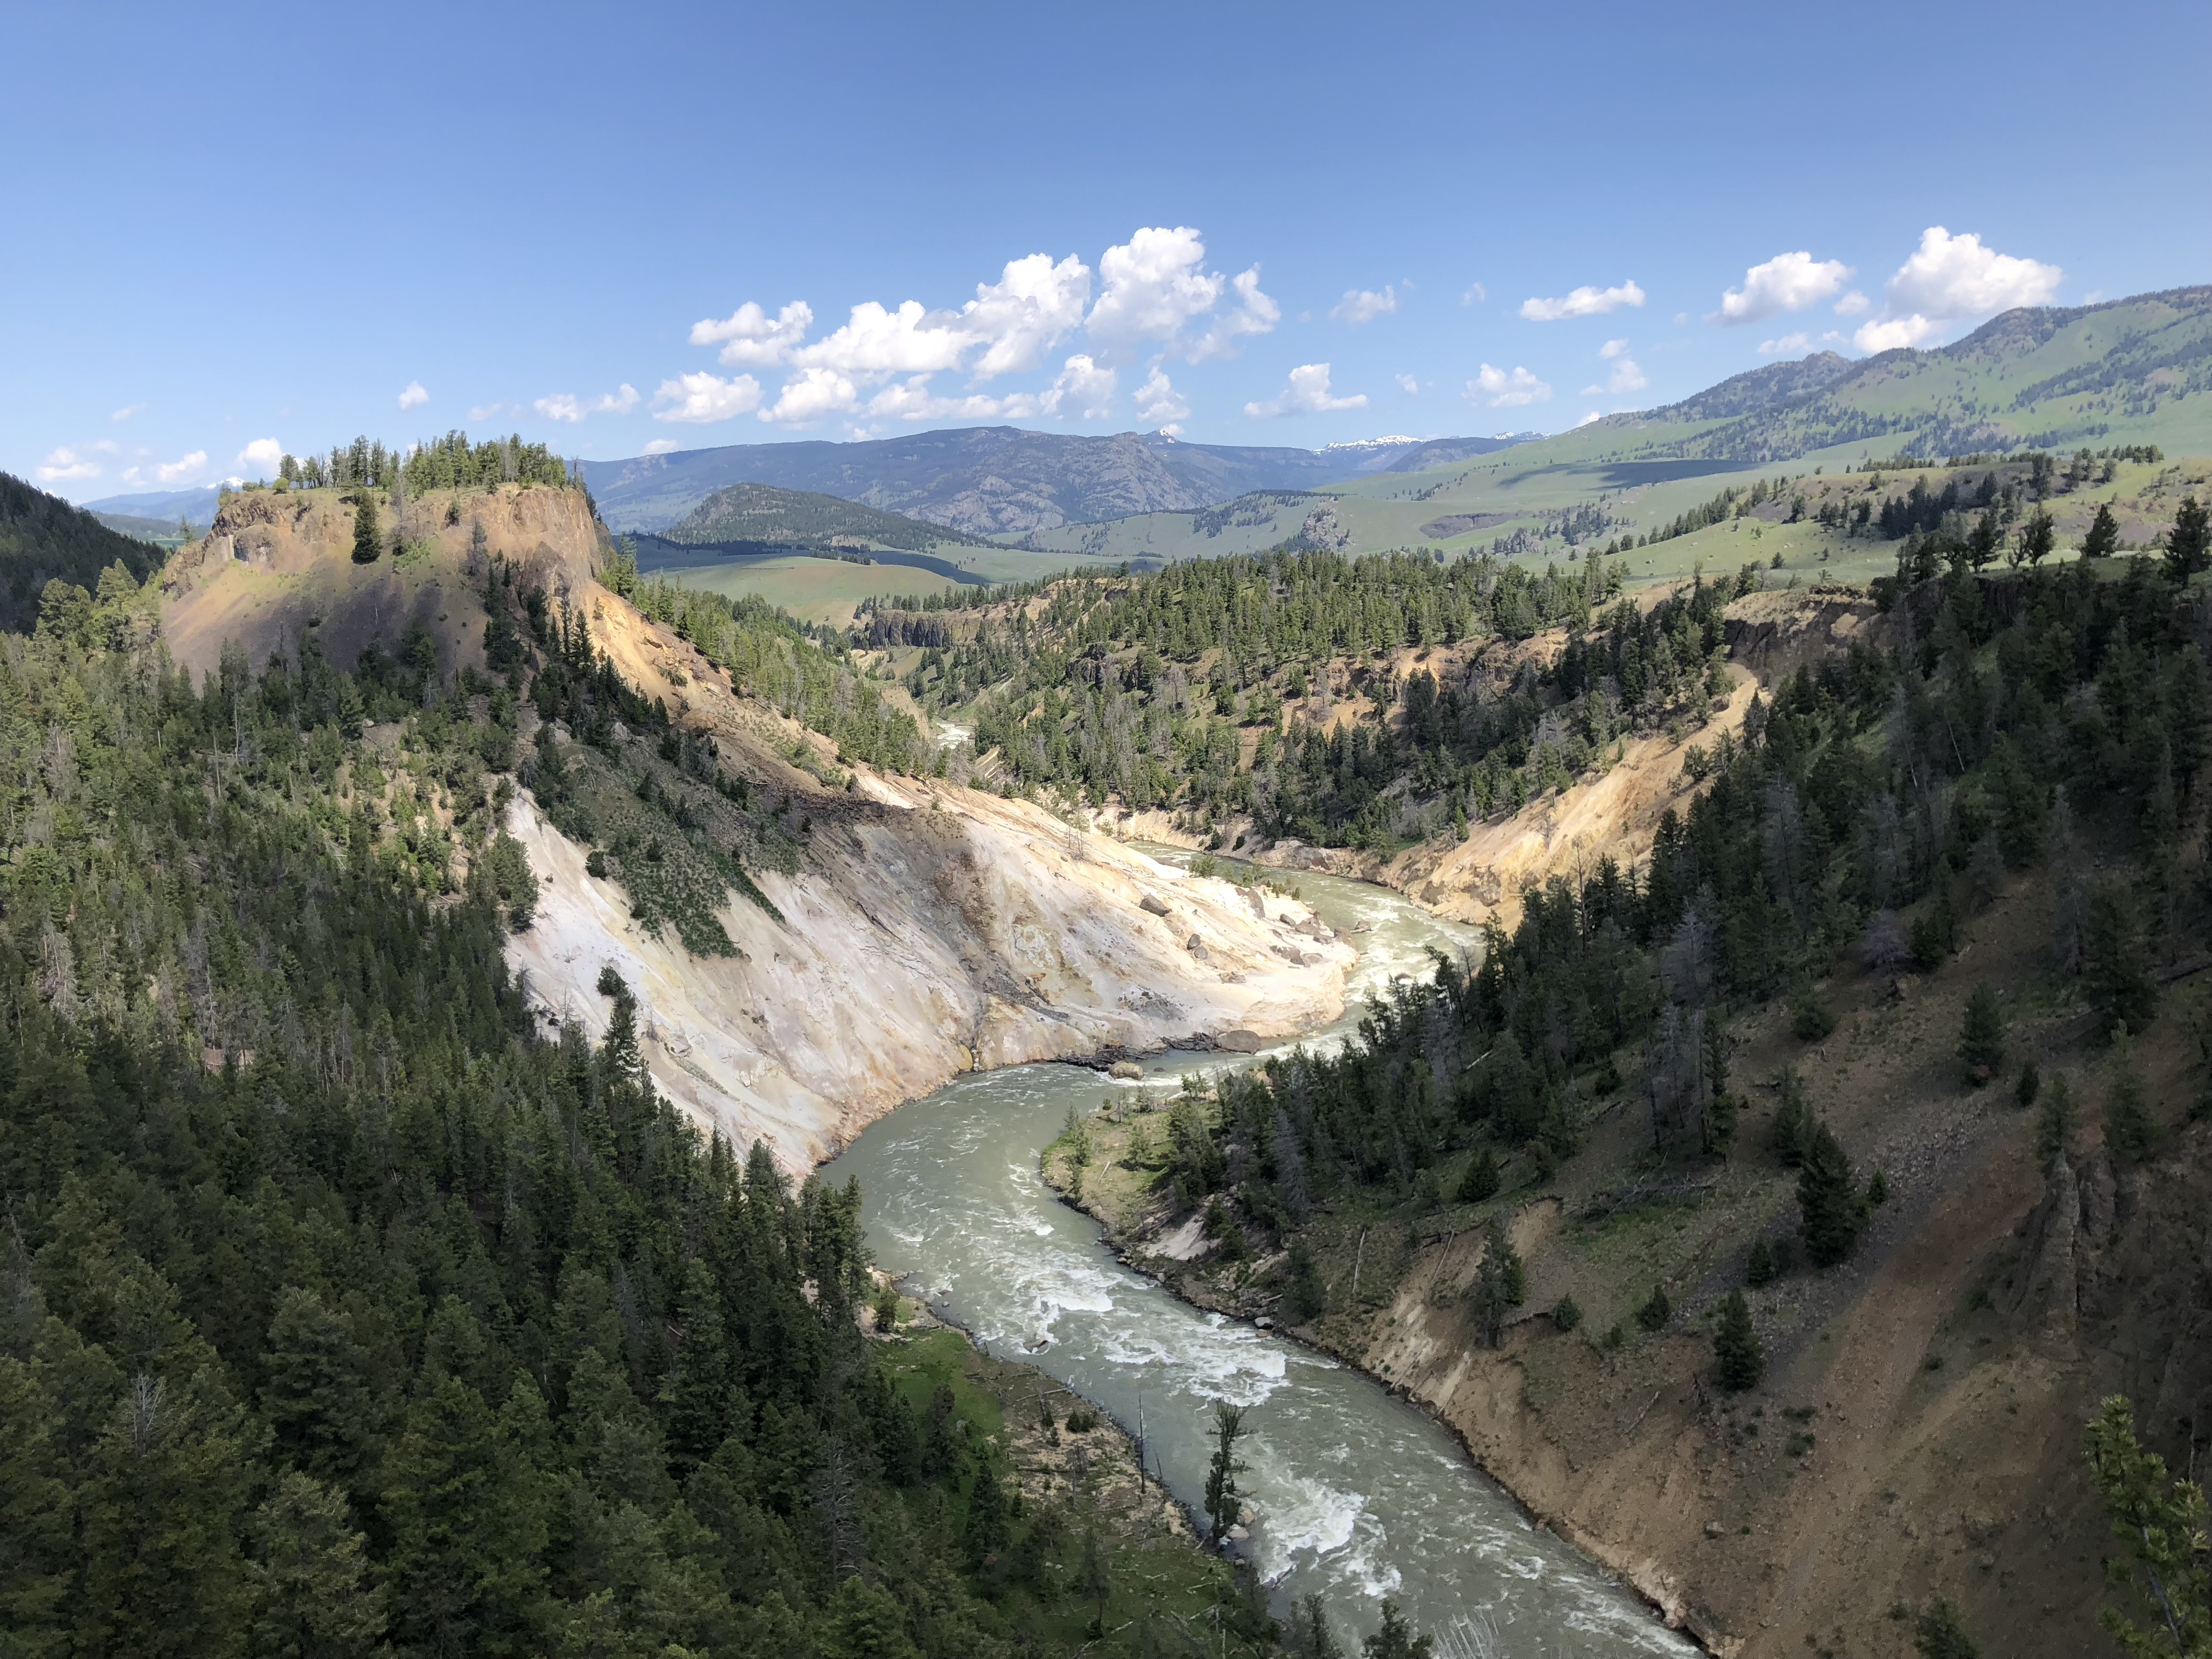 The Grand Canyon of the Yellowstone winds through the scenic park